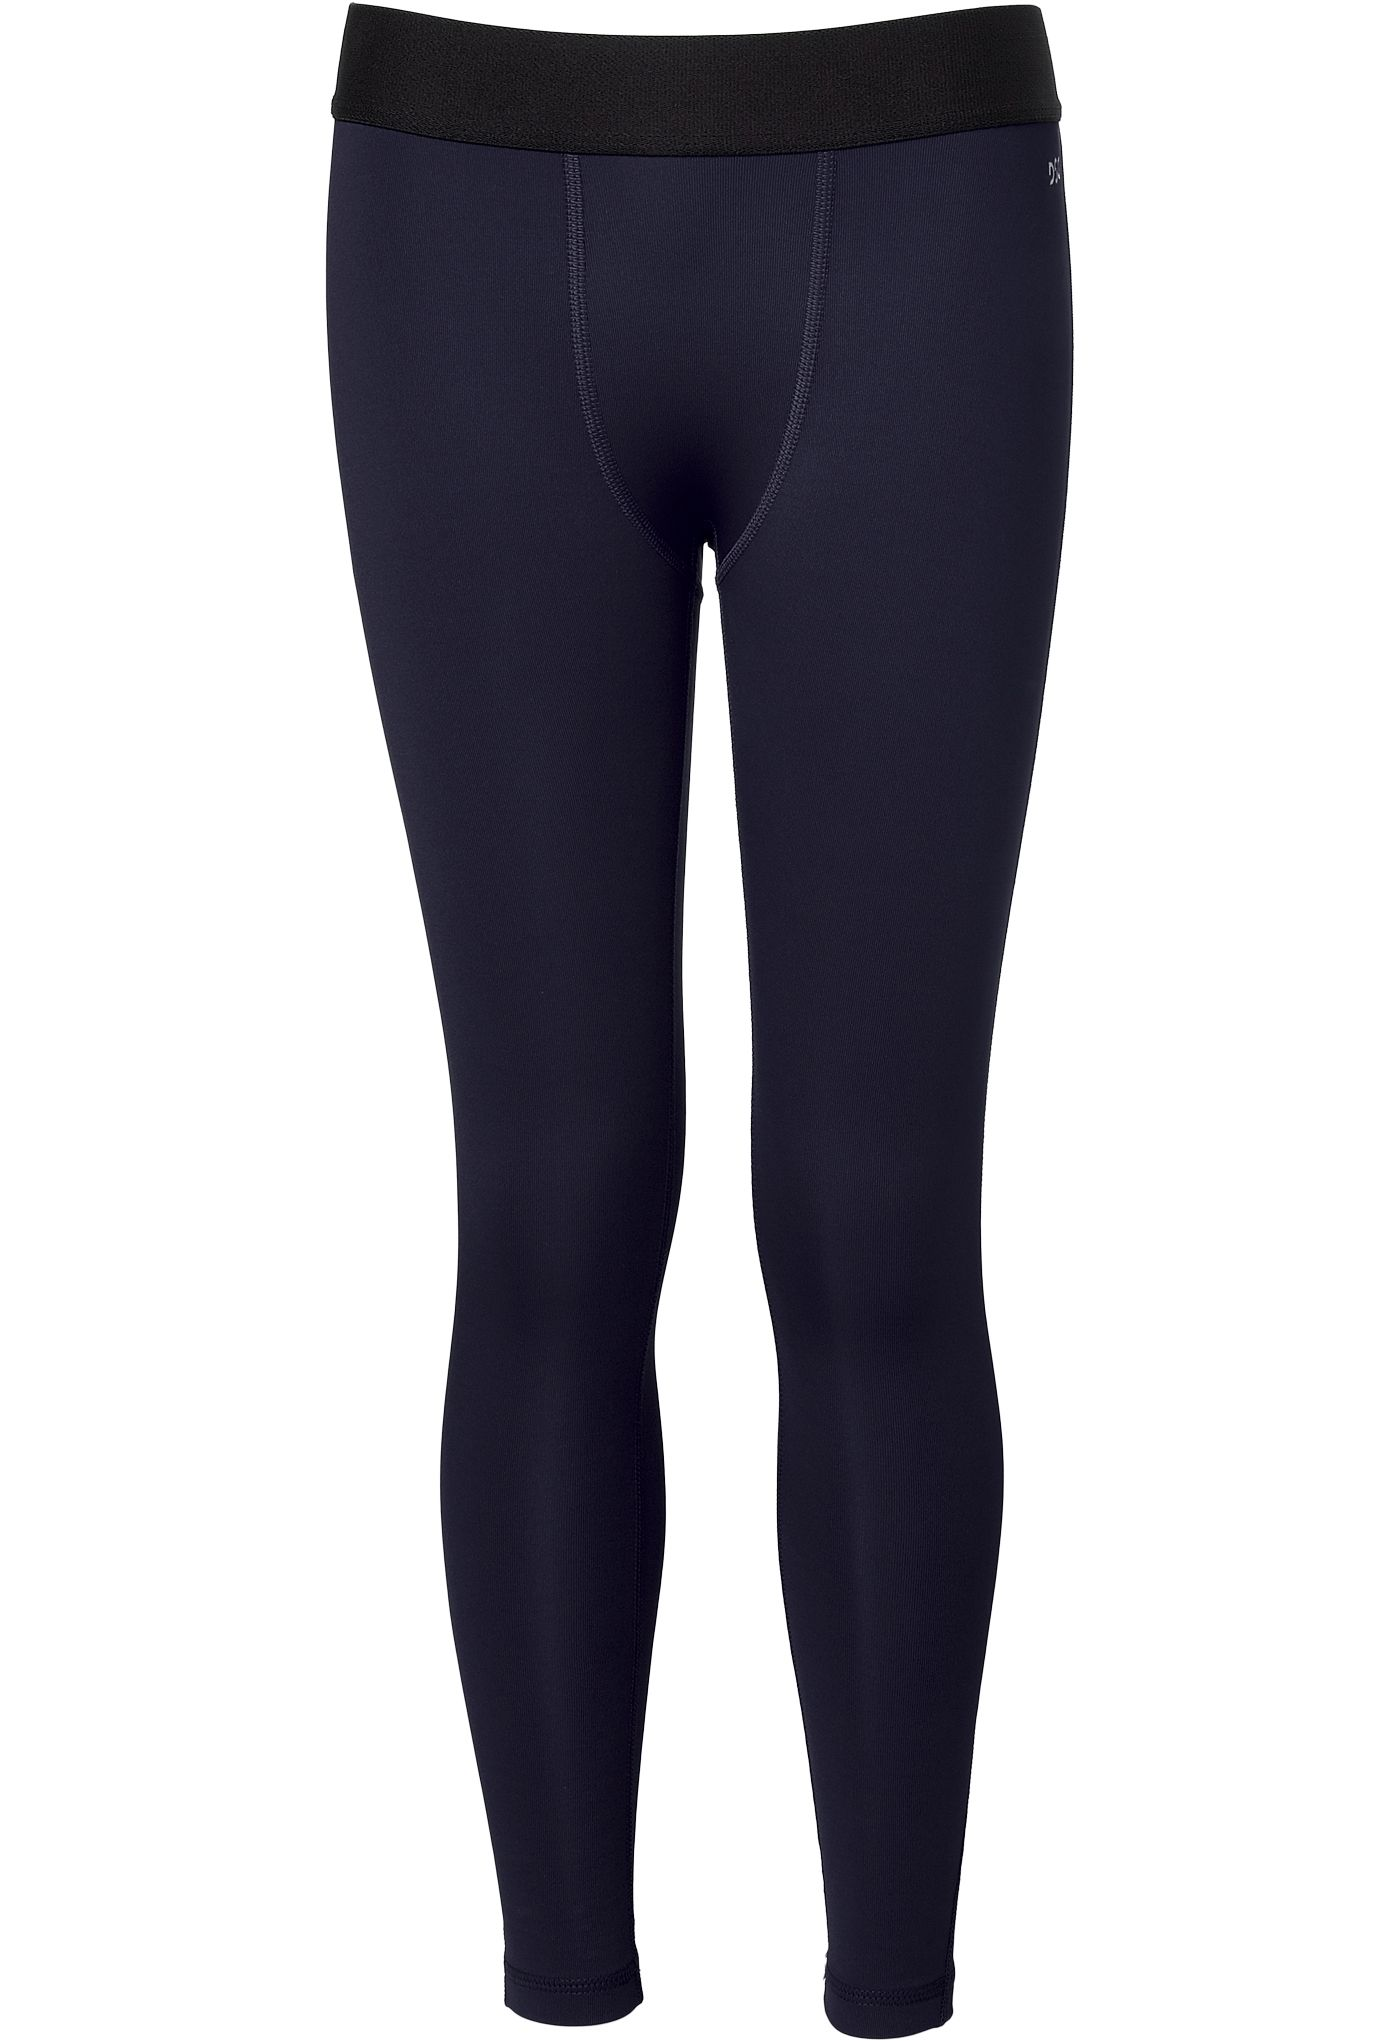 DSG Boys' Cold Weather Compression Tights